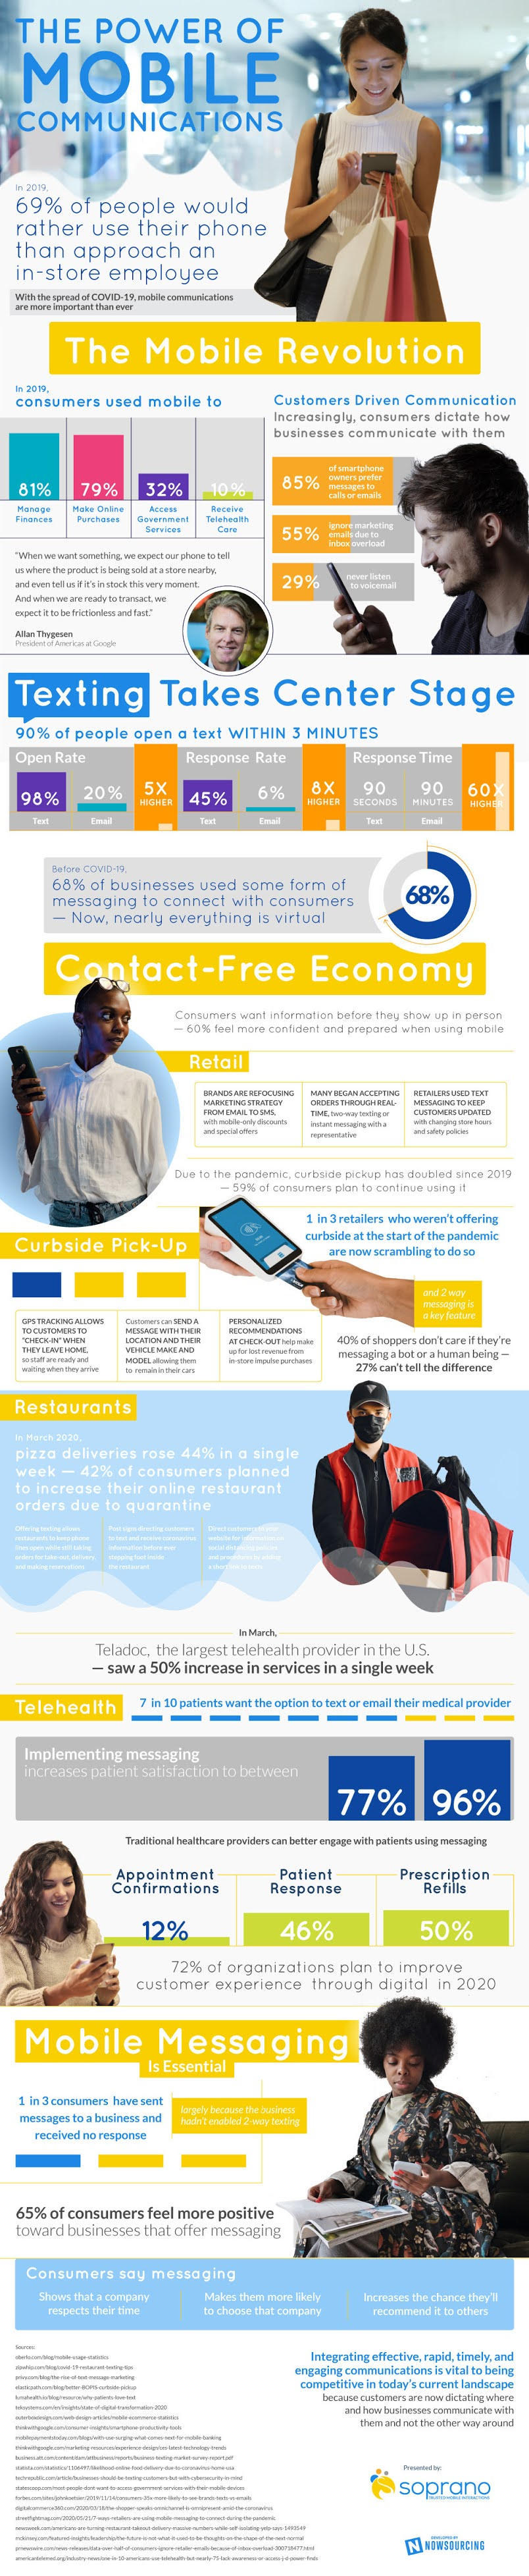 The Power of Mobile Messaging #infographic